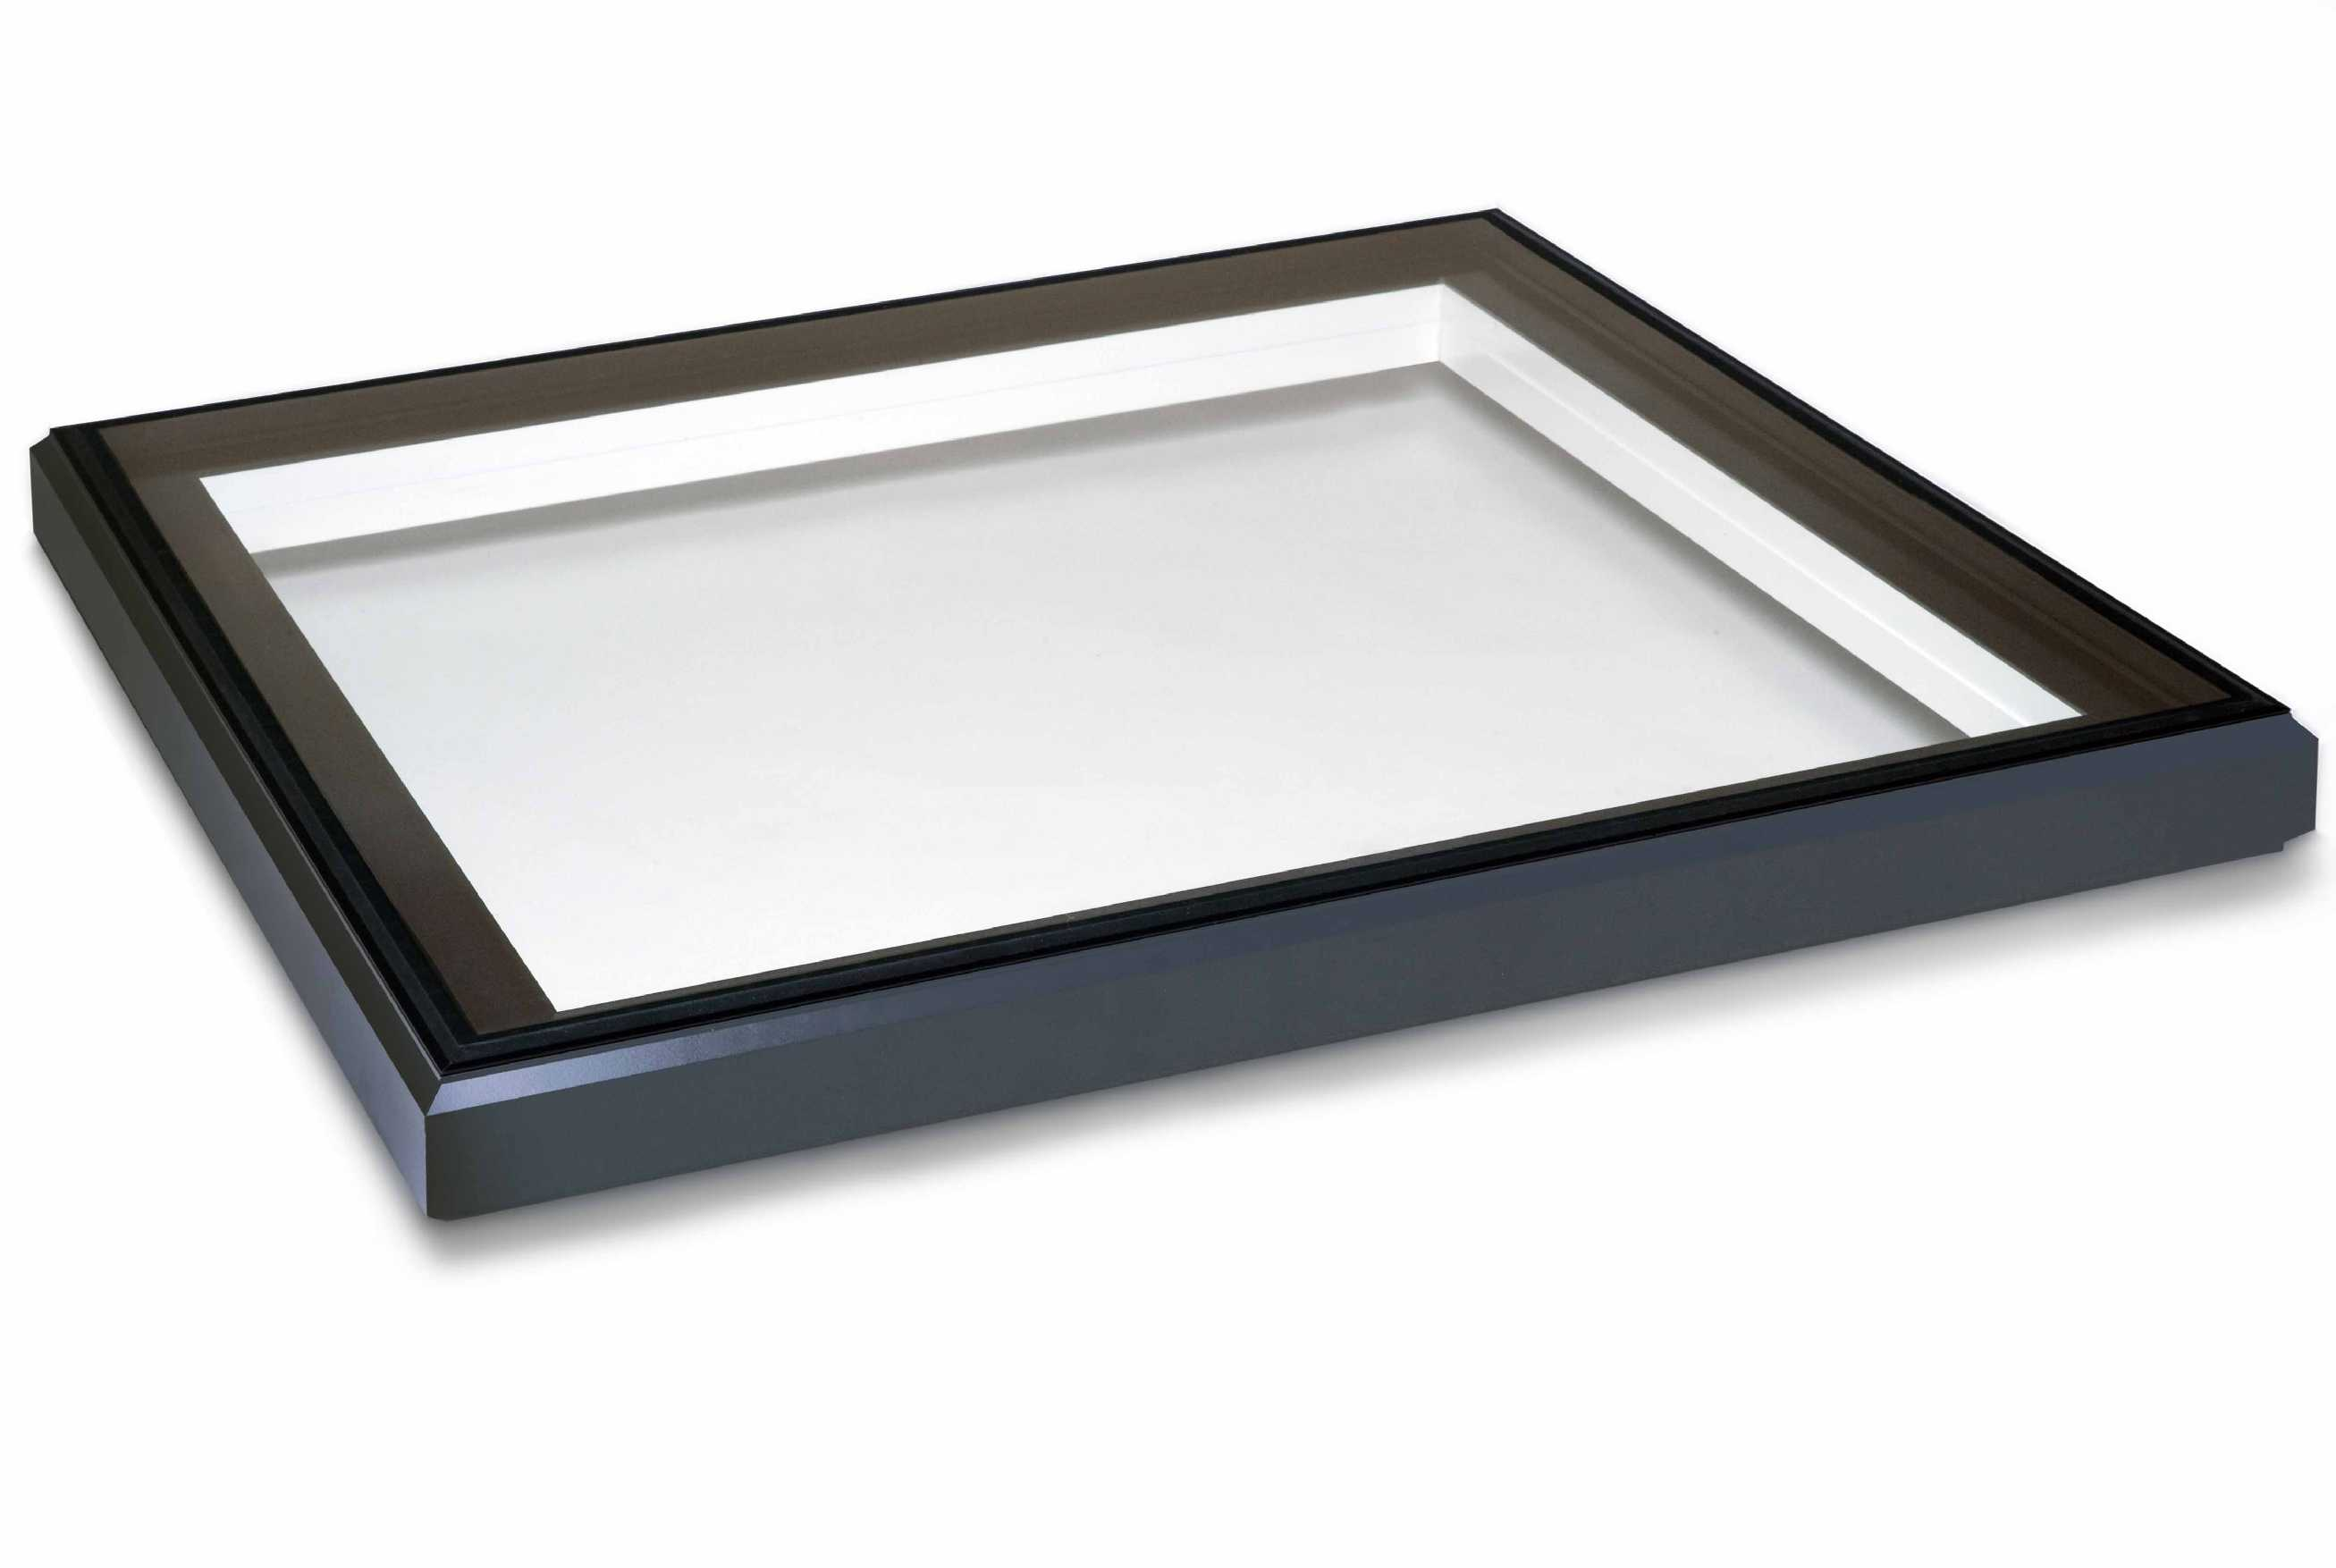 Buy EcoGard Flat Roof light, Double Glazed, Fixed, 1,000mm x 1,000mm online today